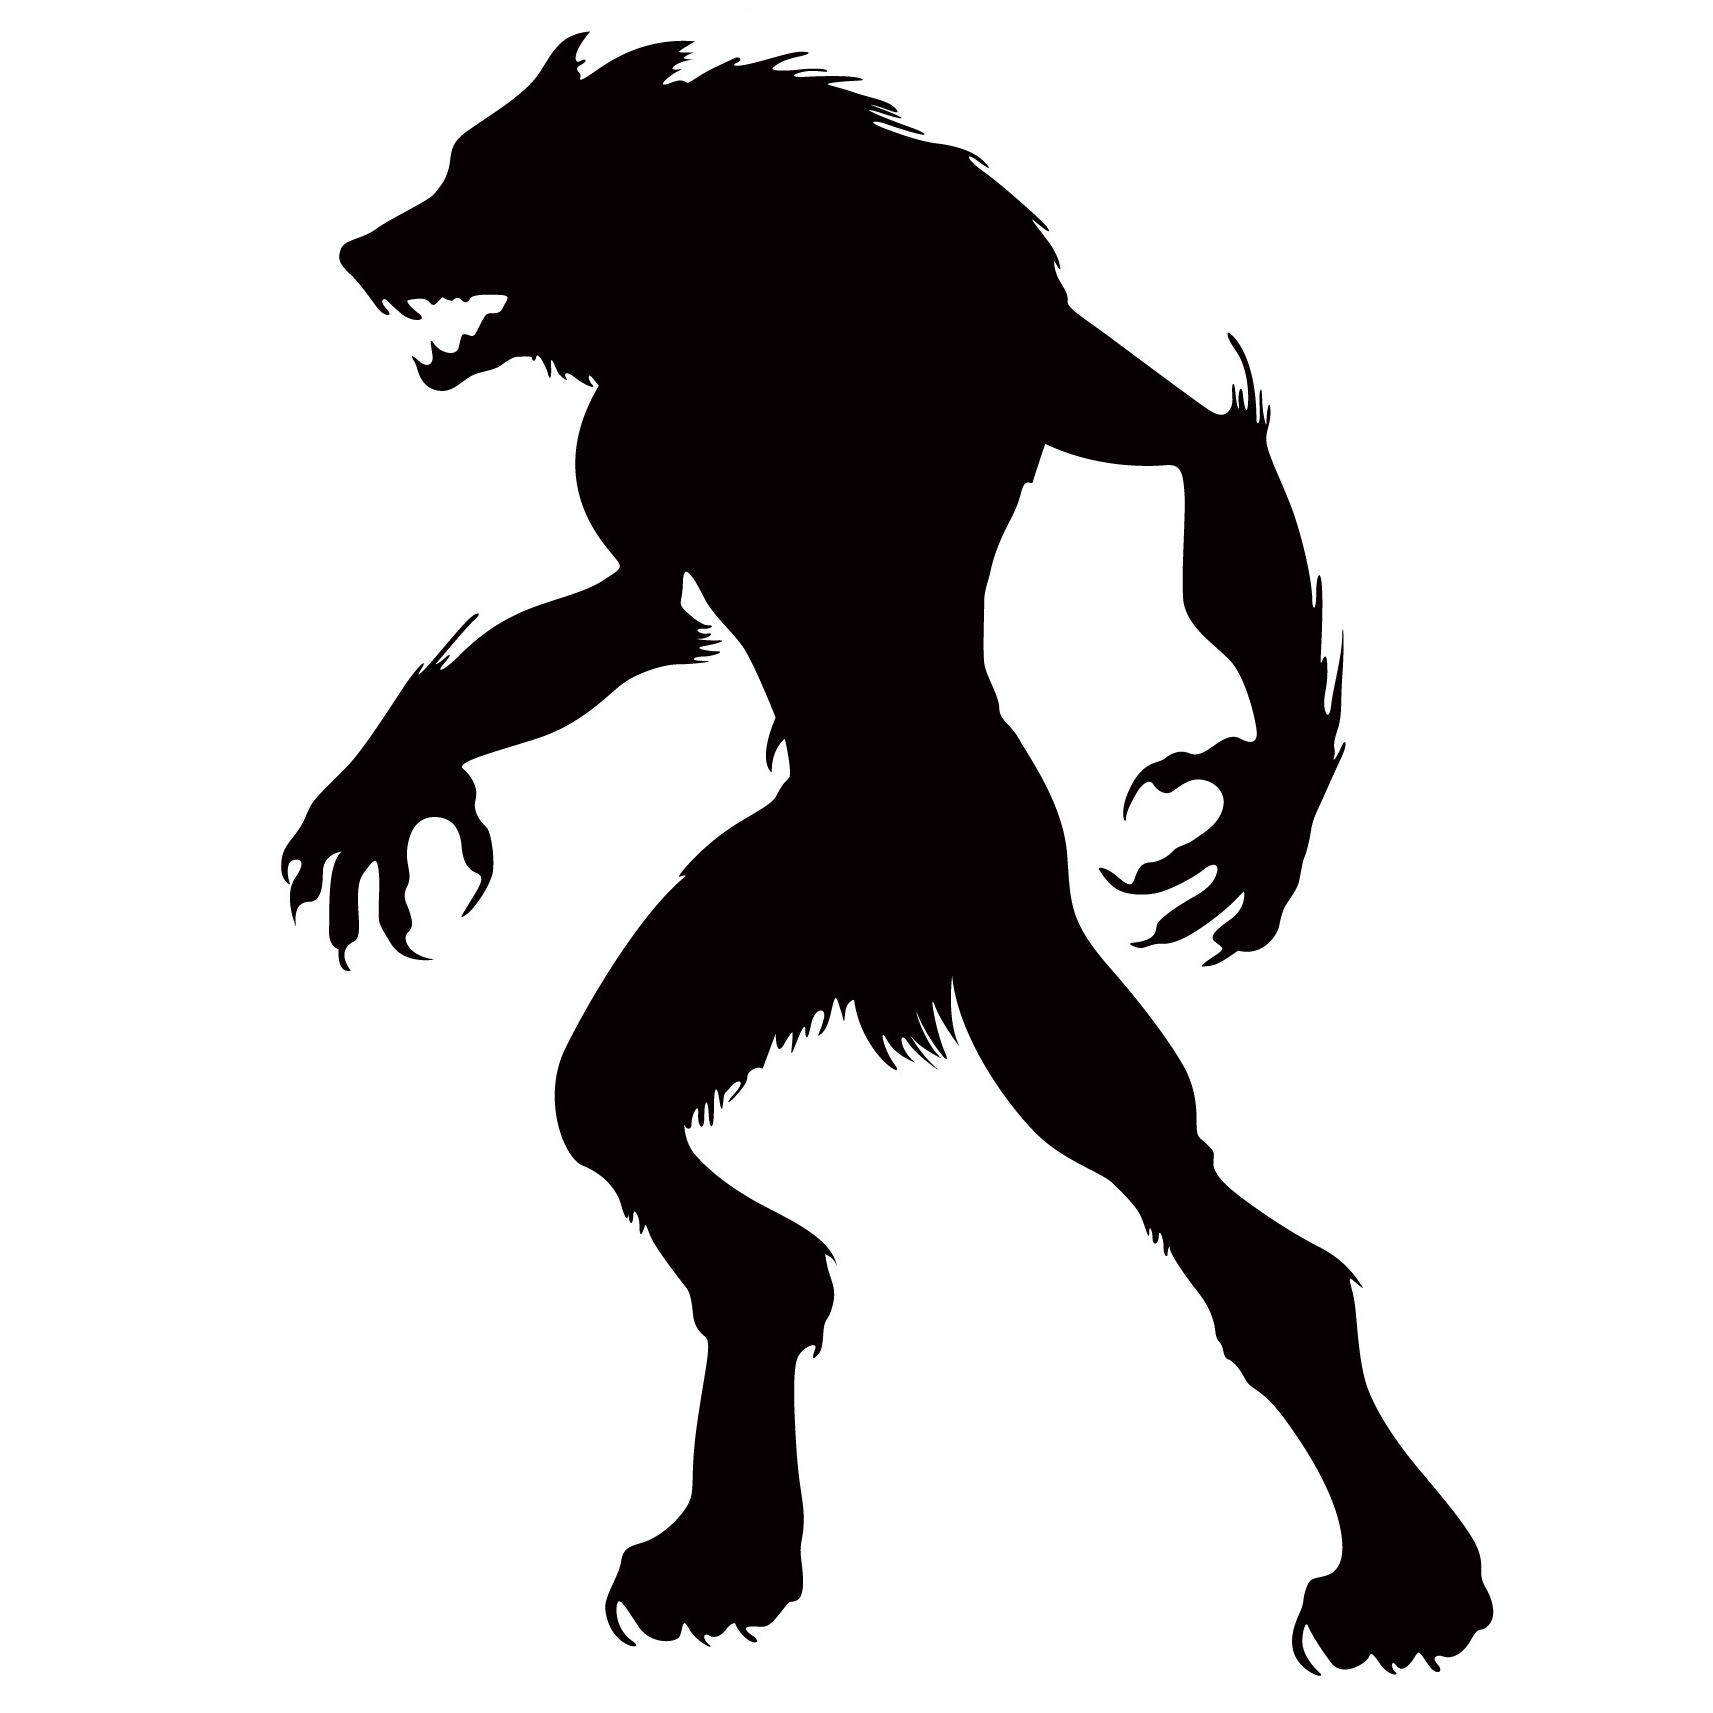 Werewolf Silhouette At Getdrawings Com Free For Personal